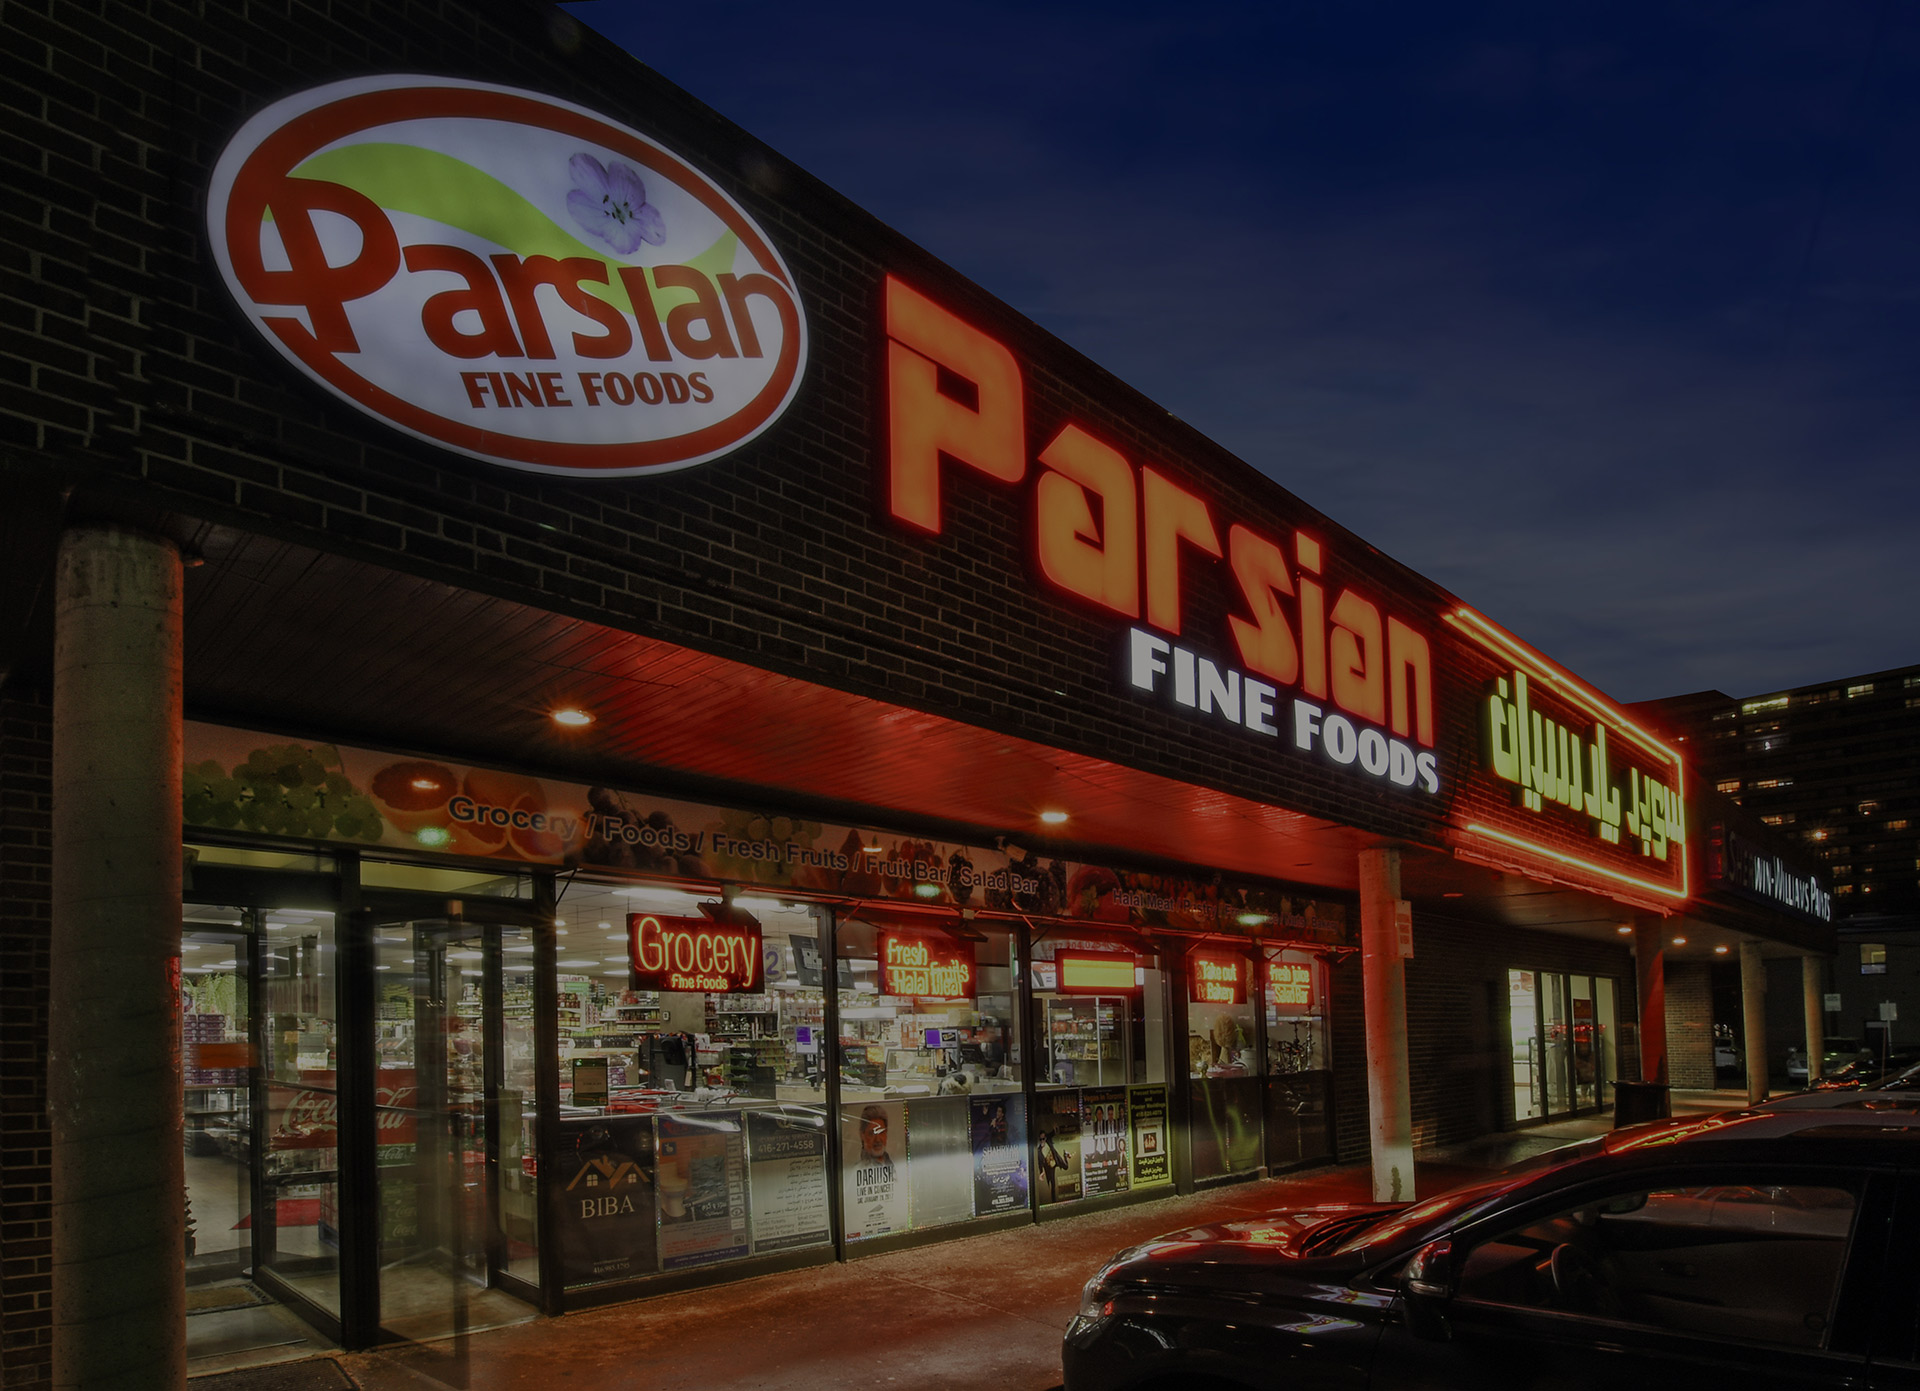 Super Parsian Grocery Store in Toronto